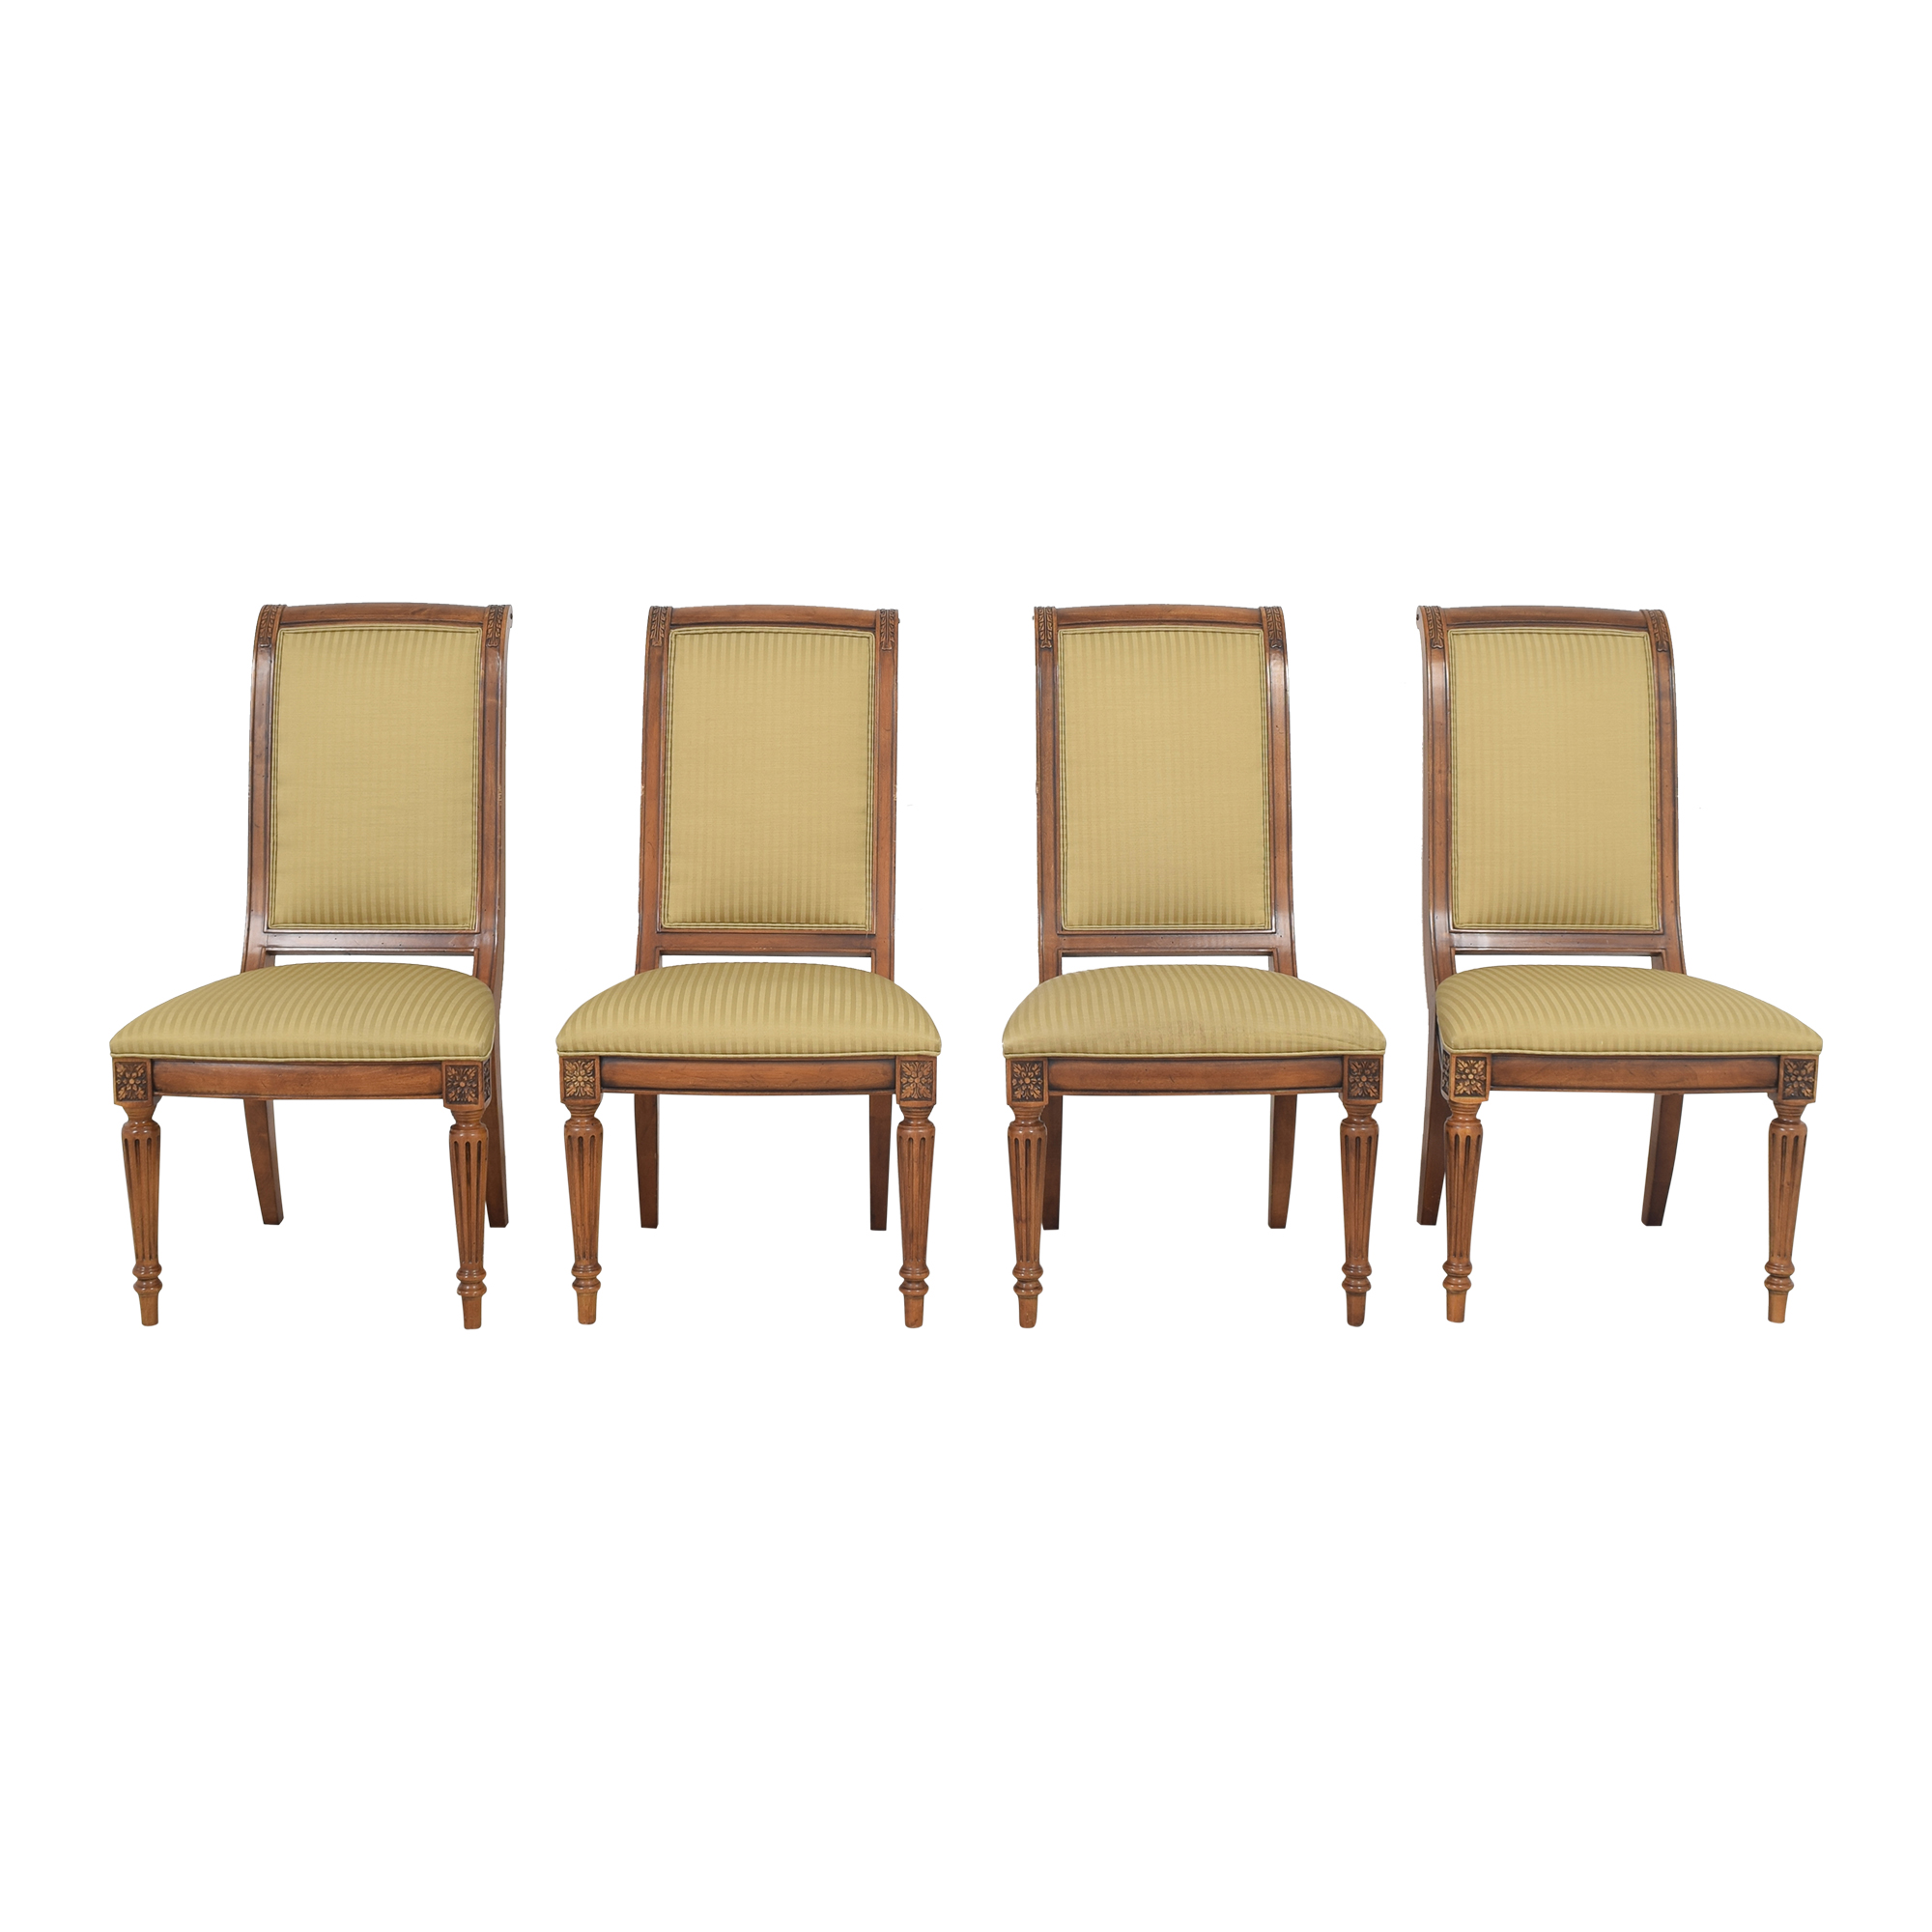 Ethan Allen Ethan Allen Adison Side Dining Chairs price